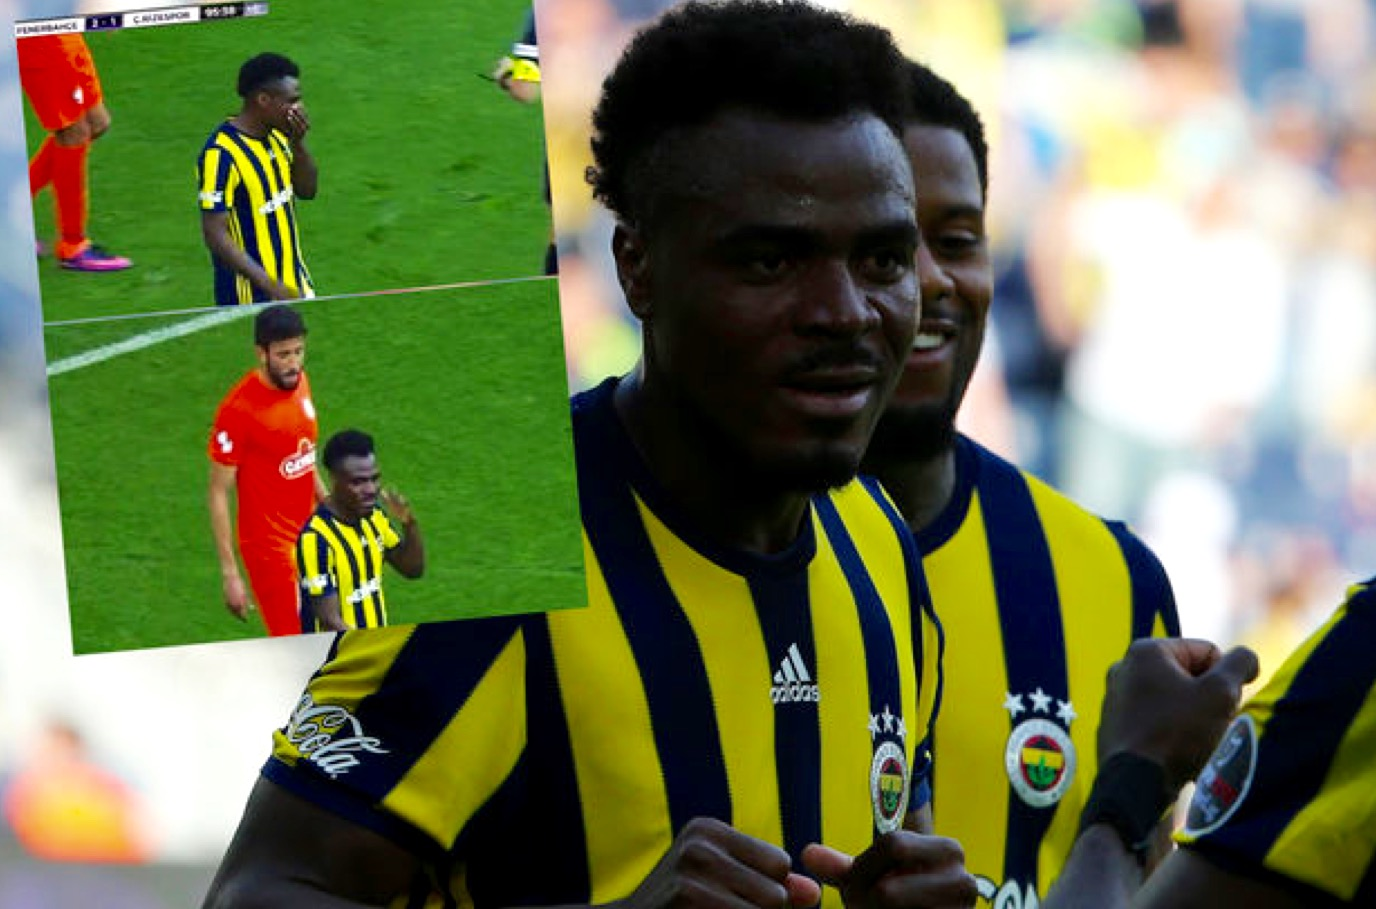 Emenike Faces Match Ban In Turkey Over Alleged Insult To Rizespor's Yacoubi